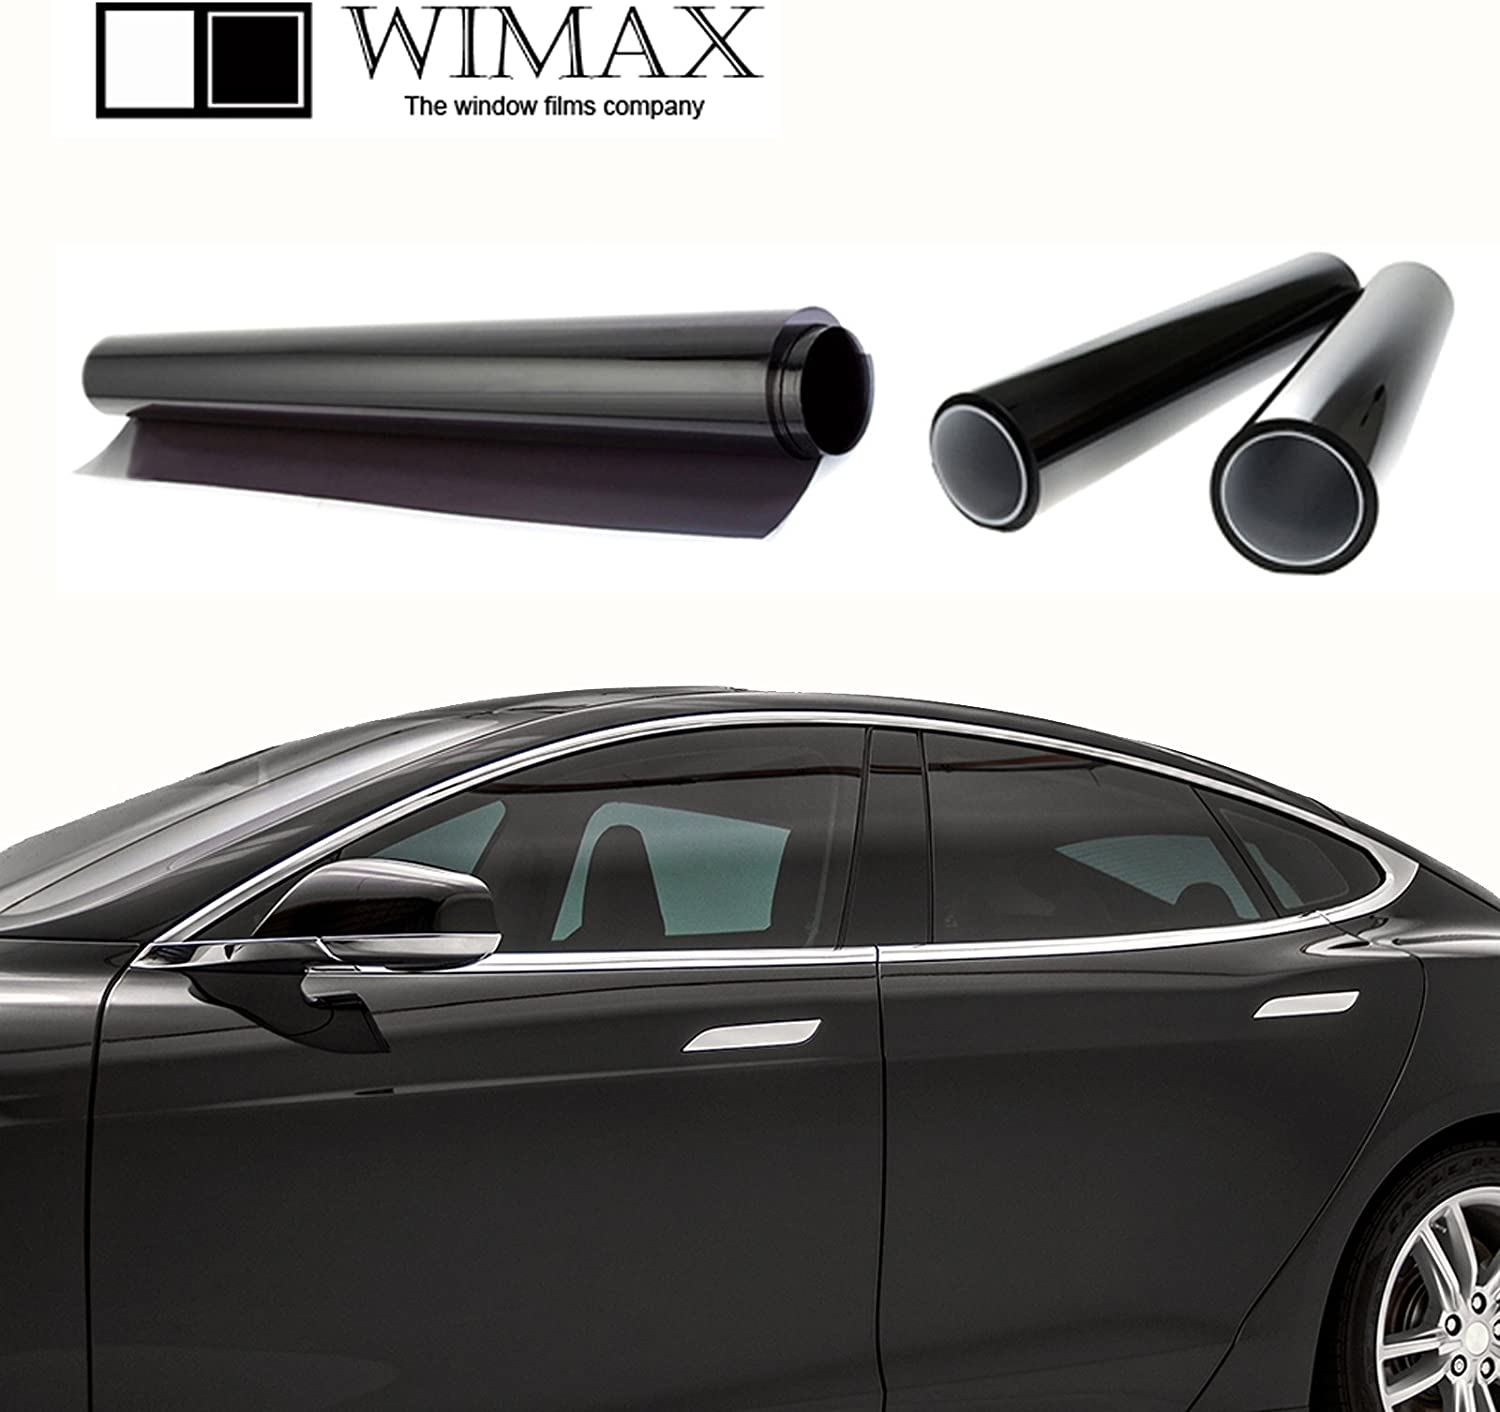 Wimax Limo 3/% VLT 36 in x 50 Ft Feet Uncut Roll Window Tint Film Auto Car Home Office